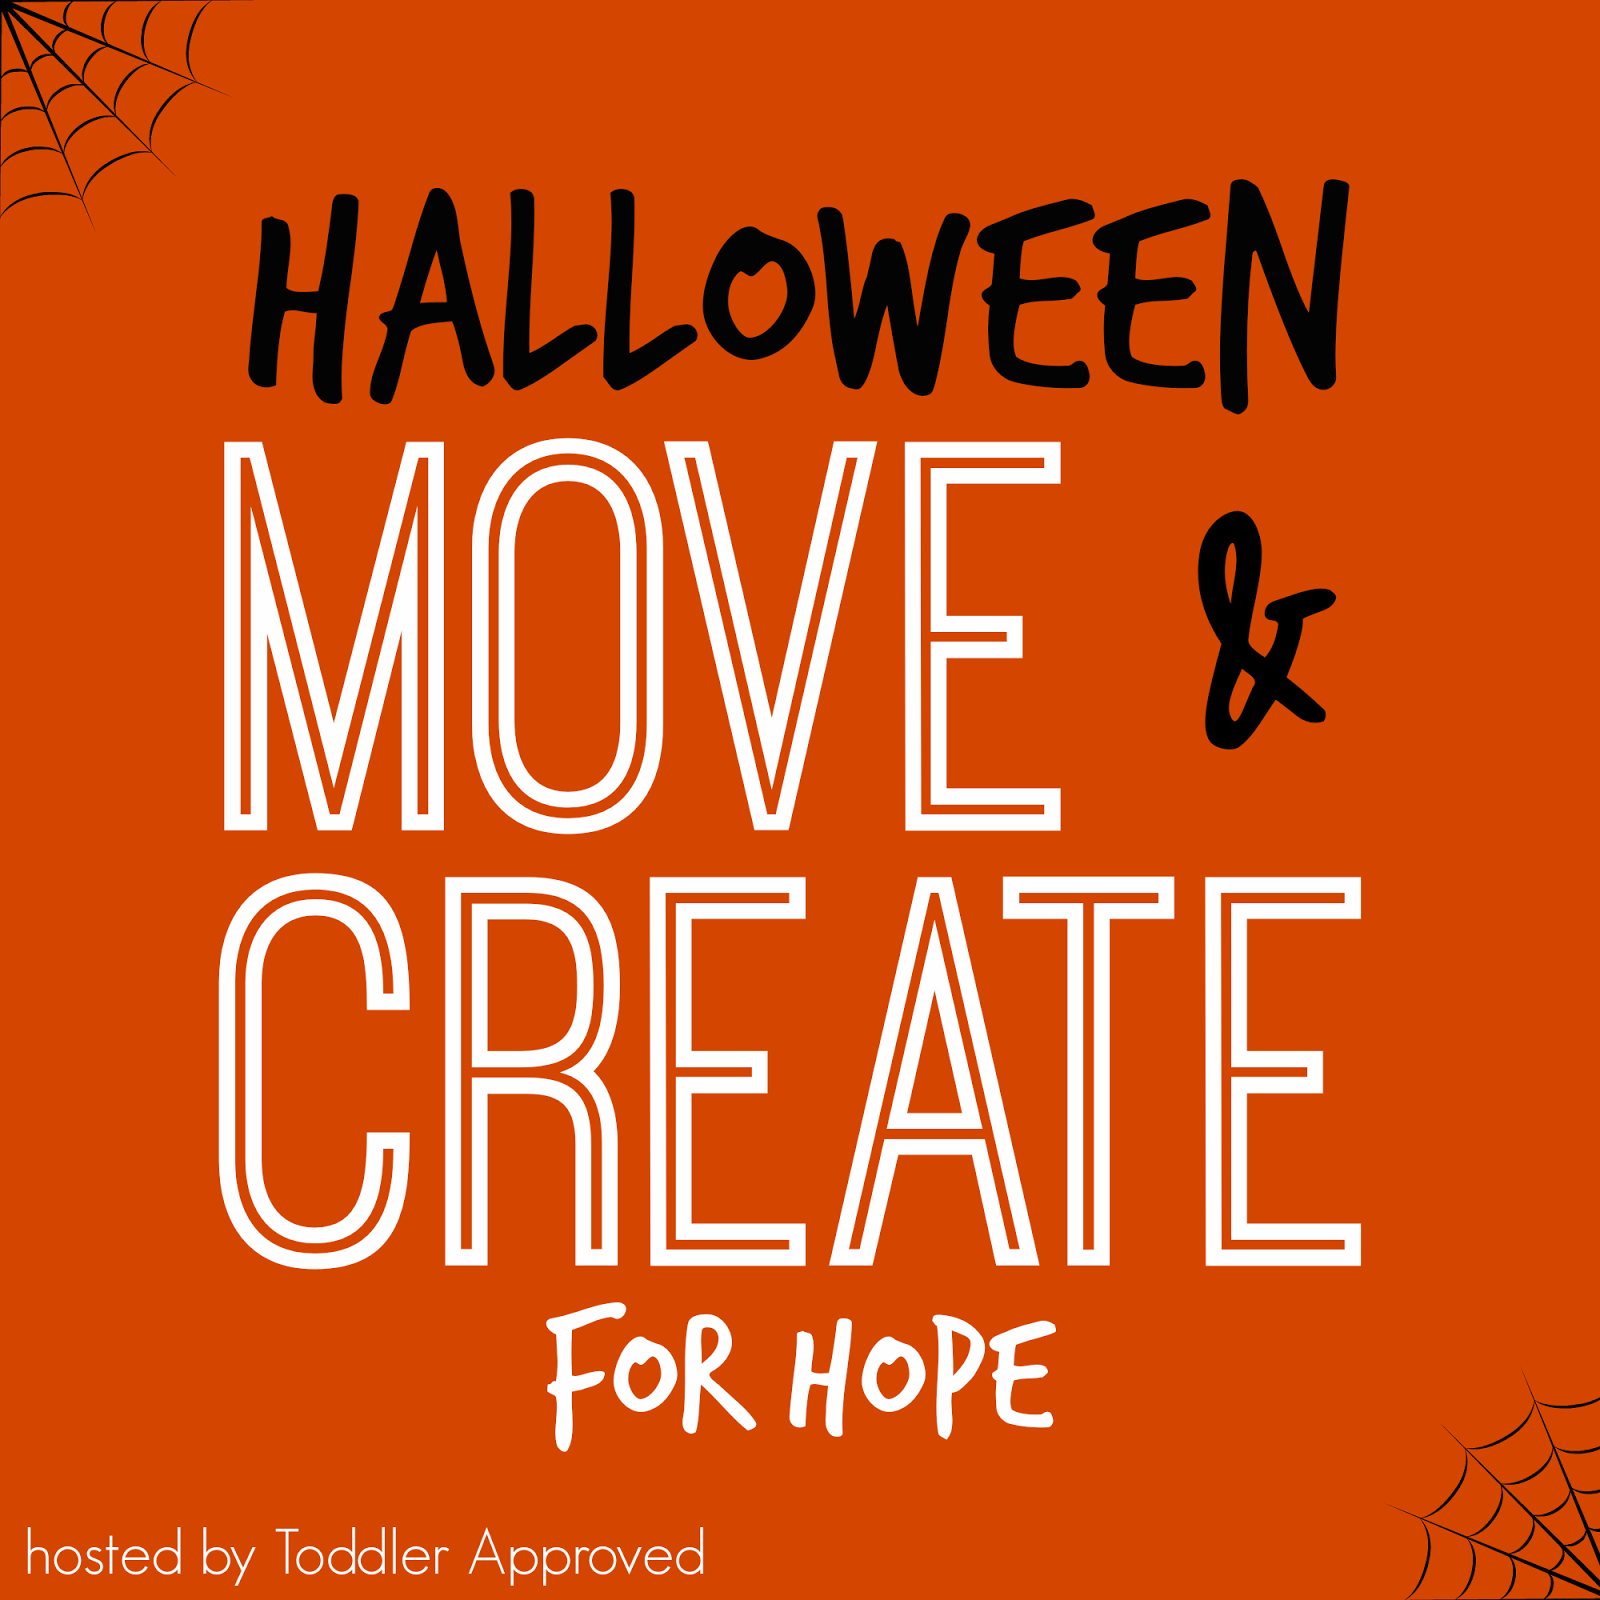 Halloween Move and Create Series to benefit Huntington's Disease research